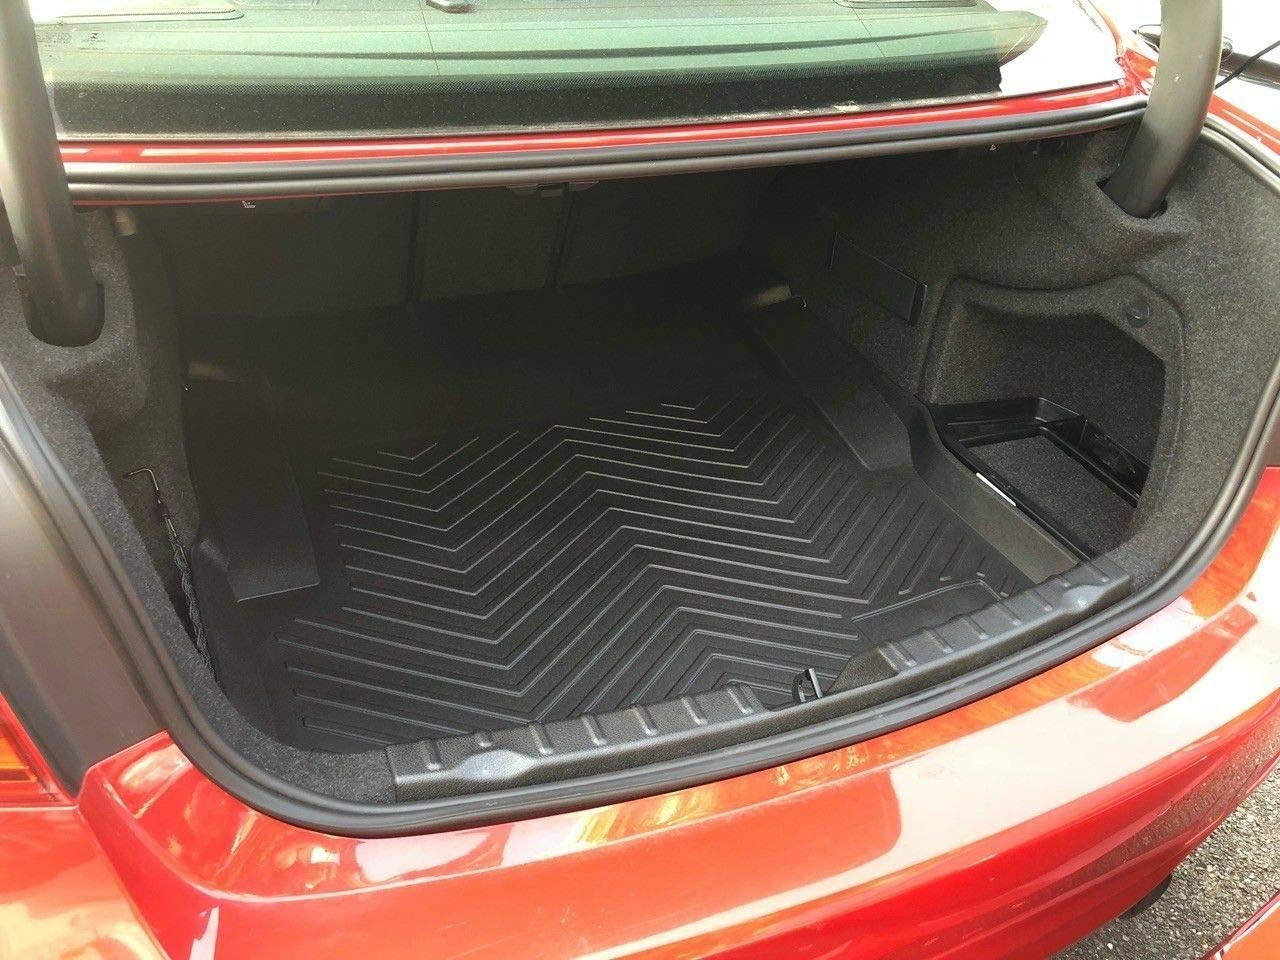 Rear Trunk Liner Tray Mat Pad for BMW 3-Series F30 F31 M3 F80 SEDAN 2012 2013 2014 2015 2016 2017 2018 Floor Cargo Cover Protection Dirt Mud Snow All Weather Season Waterproof 3d Laser Measured